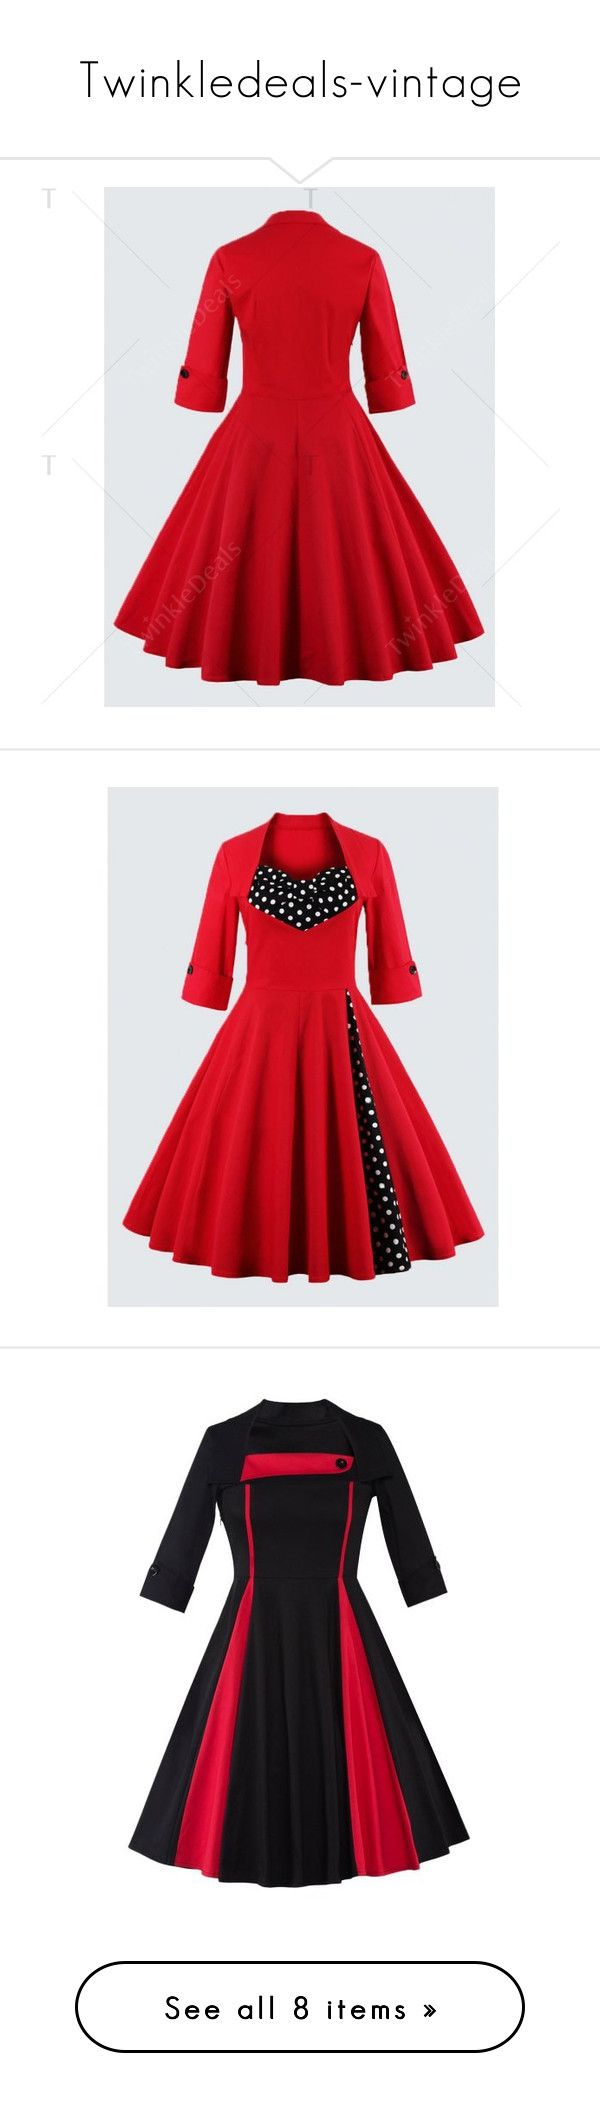 """Twinkledeals-vintage"" by nadiazaful ❤ liked on Polyvore featuring dresses, polka dot dress, plus size polka dot dress, vintage polka dot dress, vintage dresses, red polka dot dress, plus size dresses, womens plus dresses, vintage day dress and red dress"